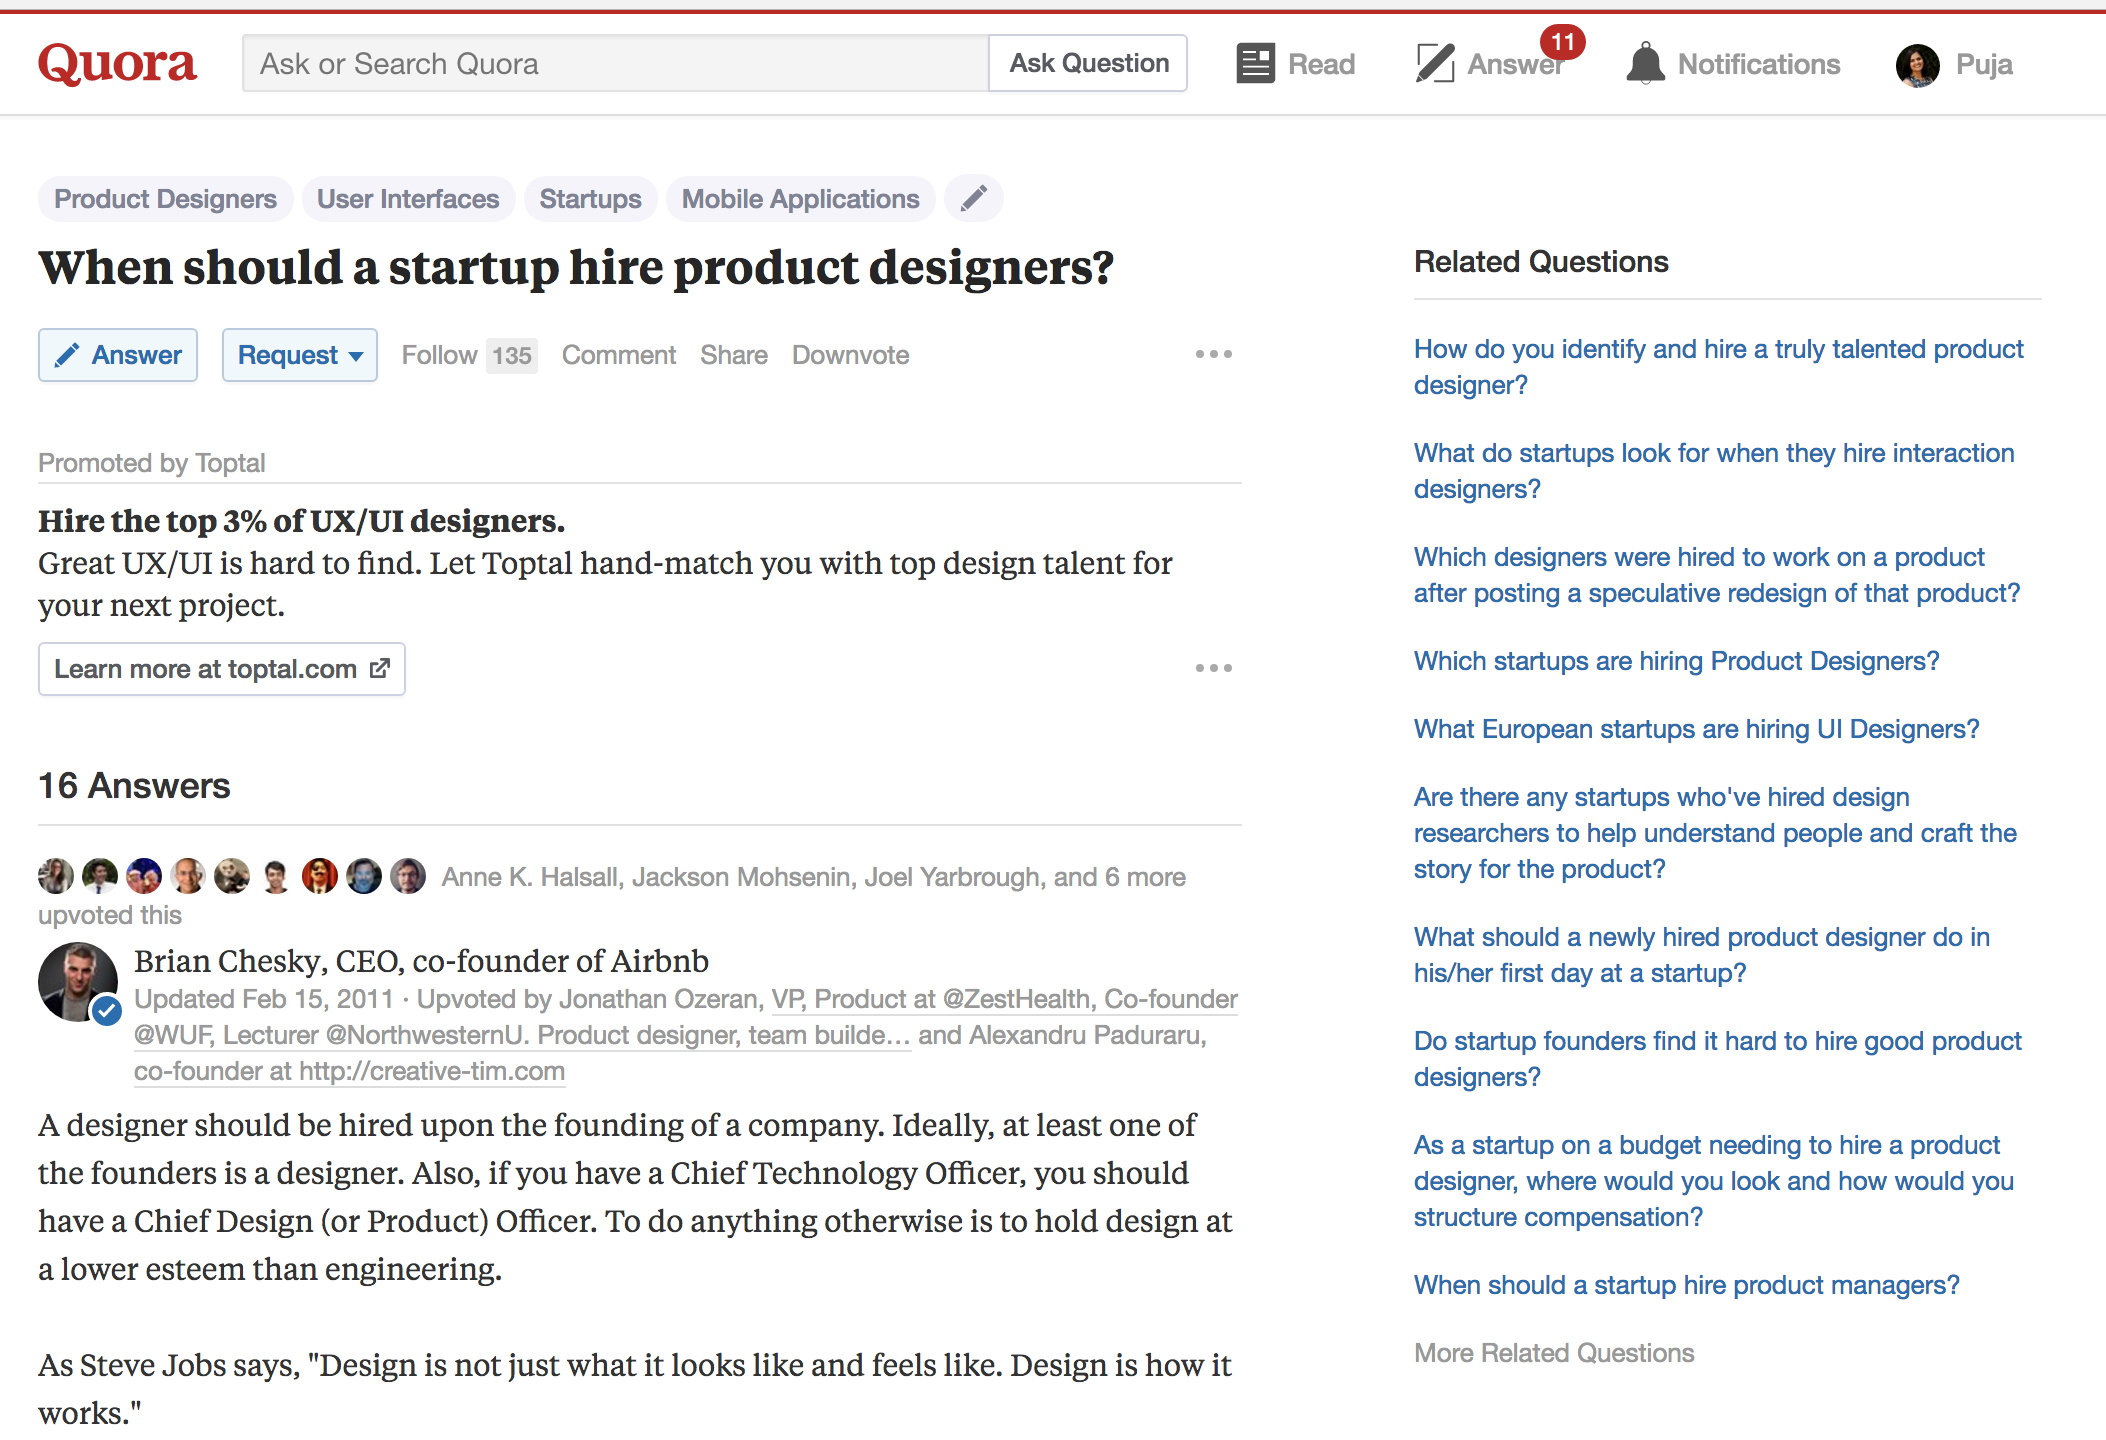 Target your ads to relevant topics and questions on Quora.